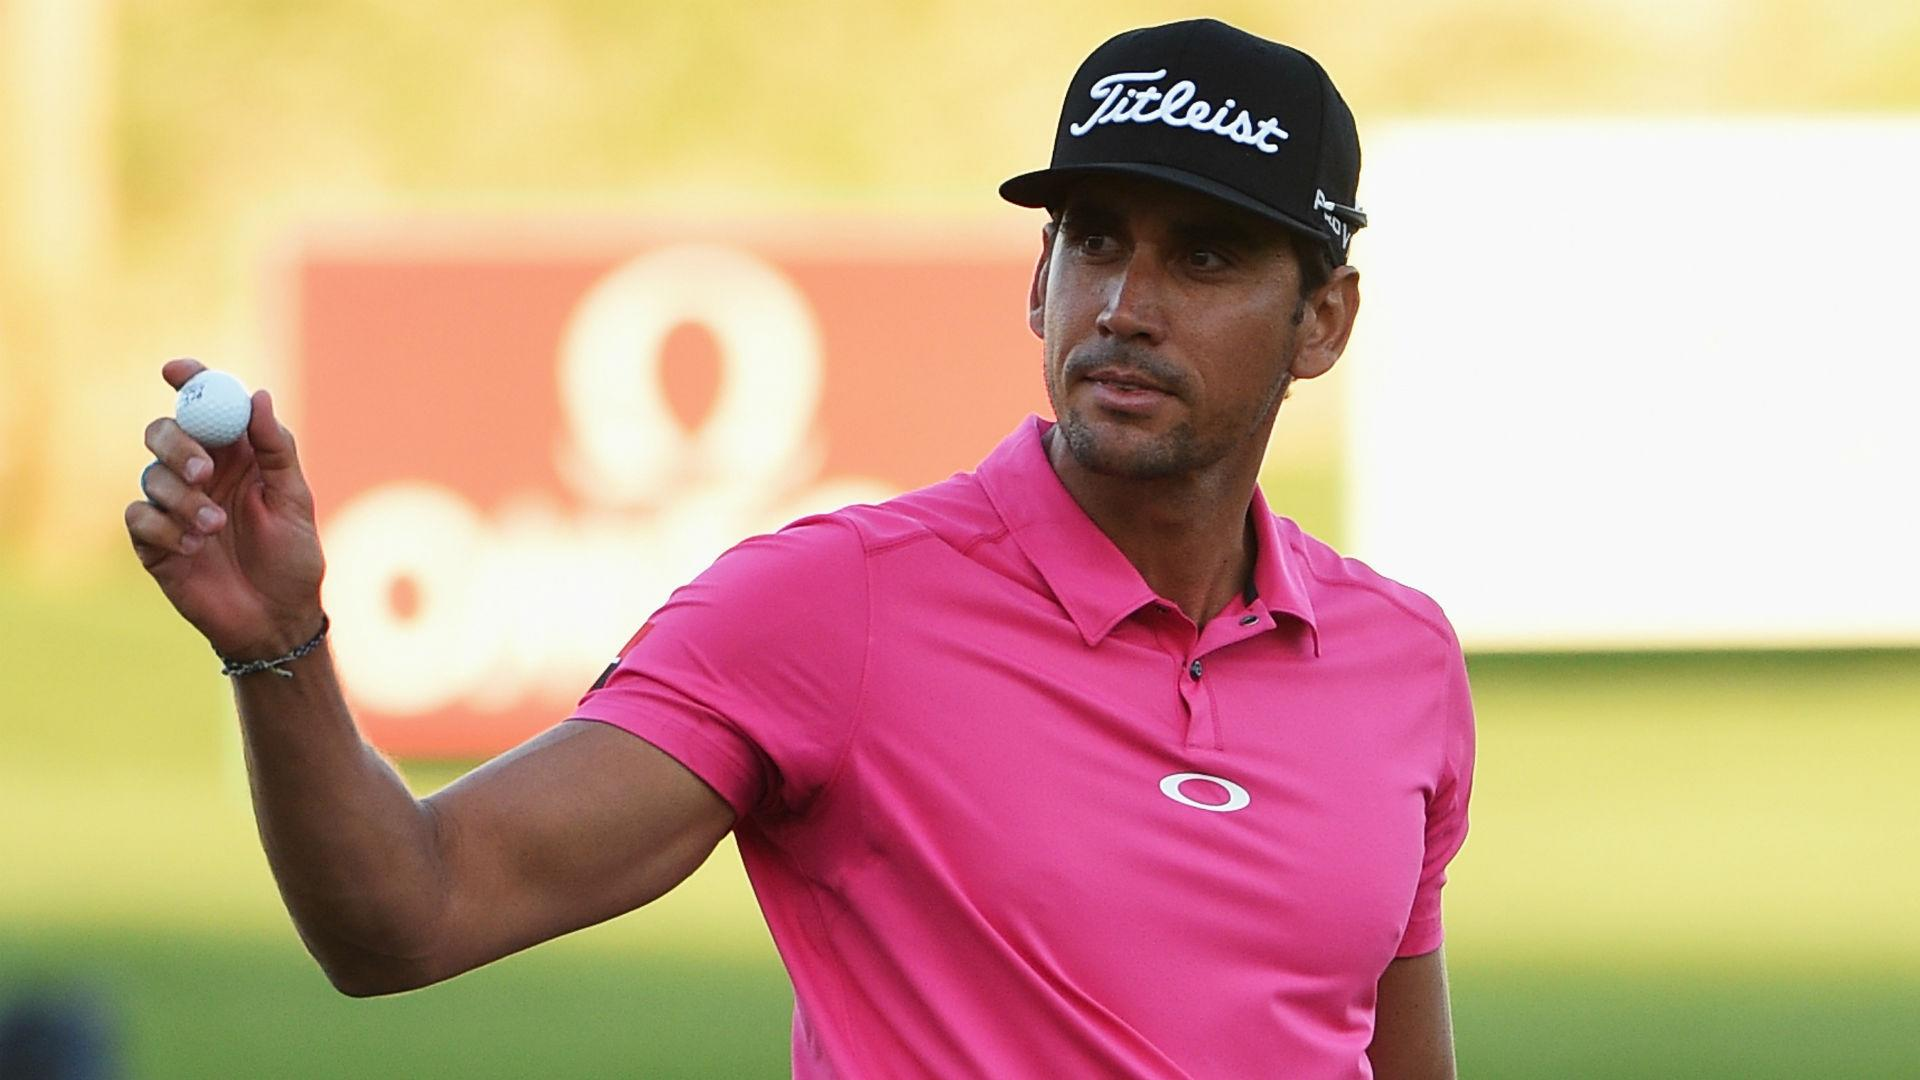 Cabrera-Bello leads in Dubai, Els banishes yips